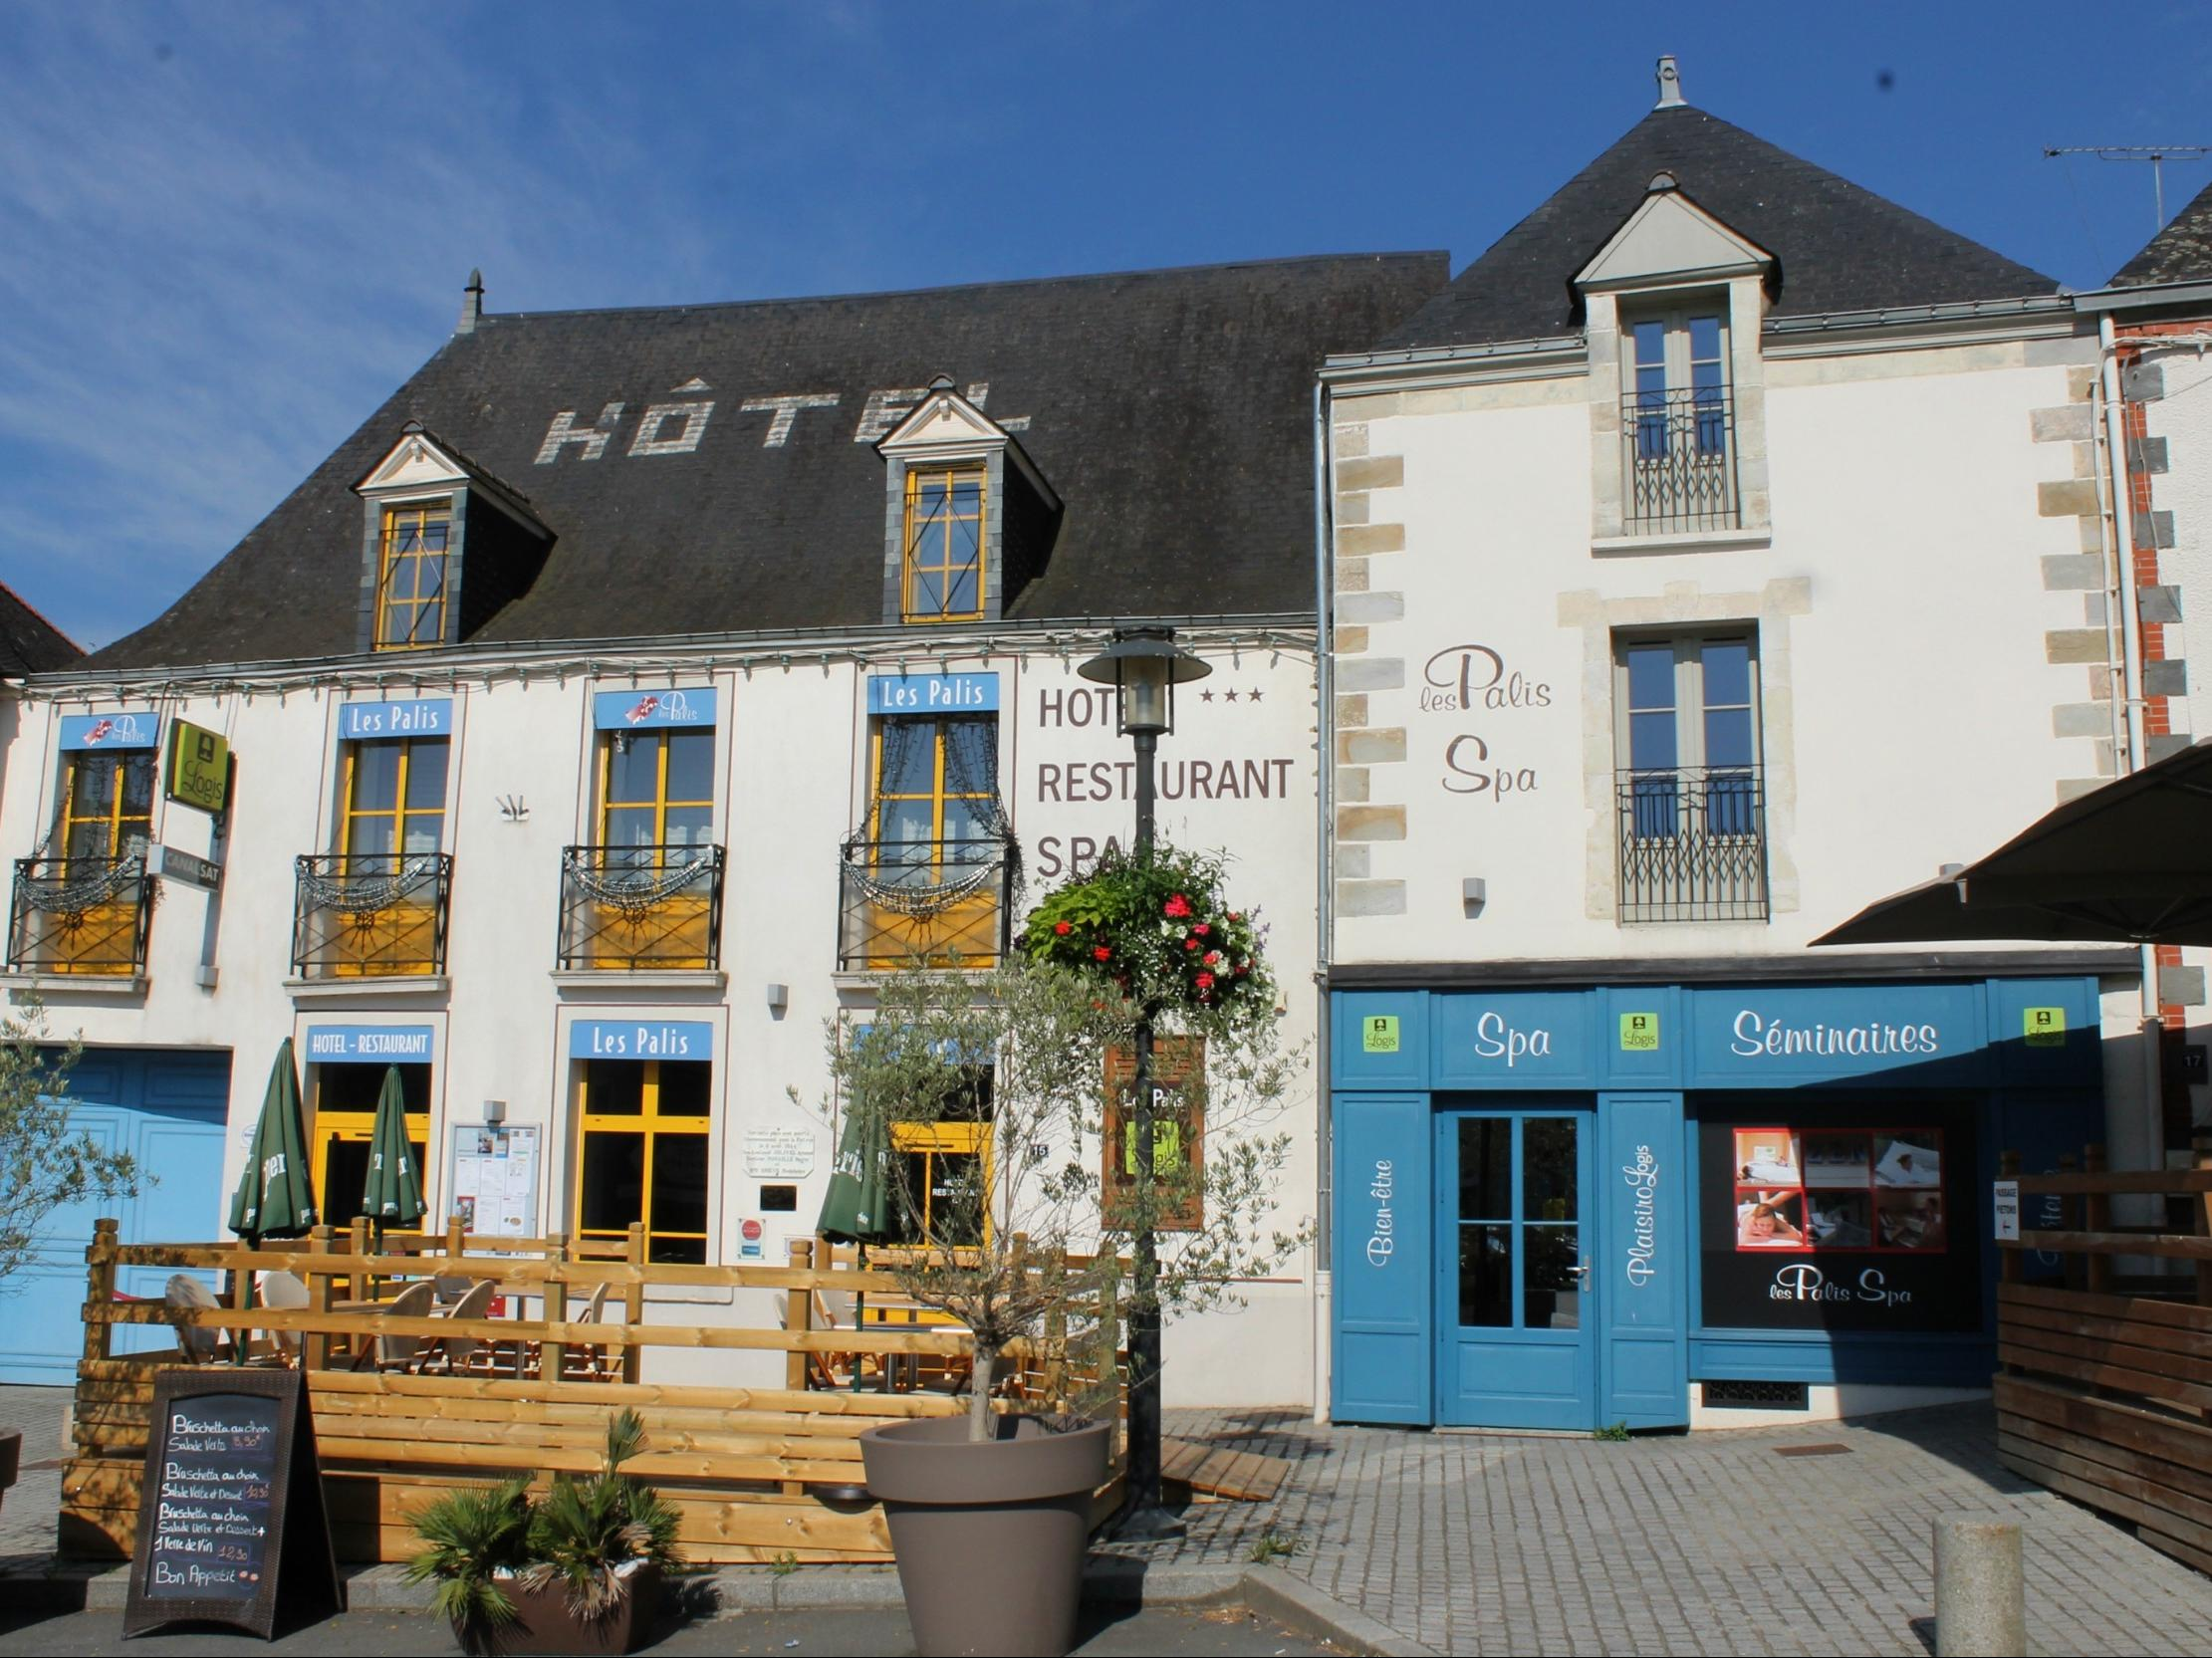 Hotel Les Palis Spa Hotel Logis Grand Fougeray Stay Brittany